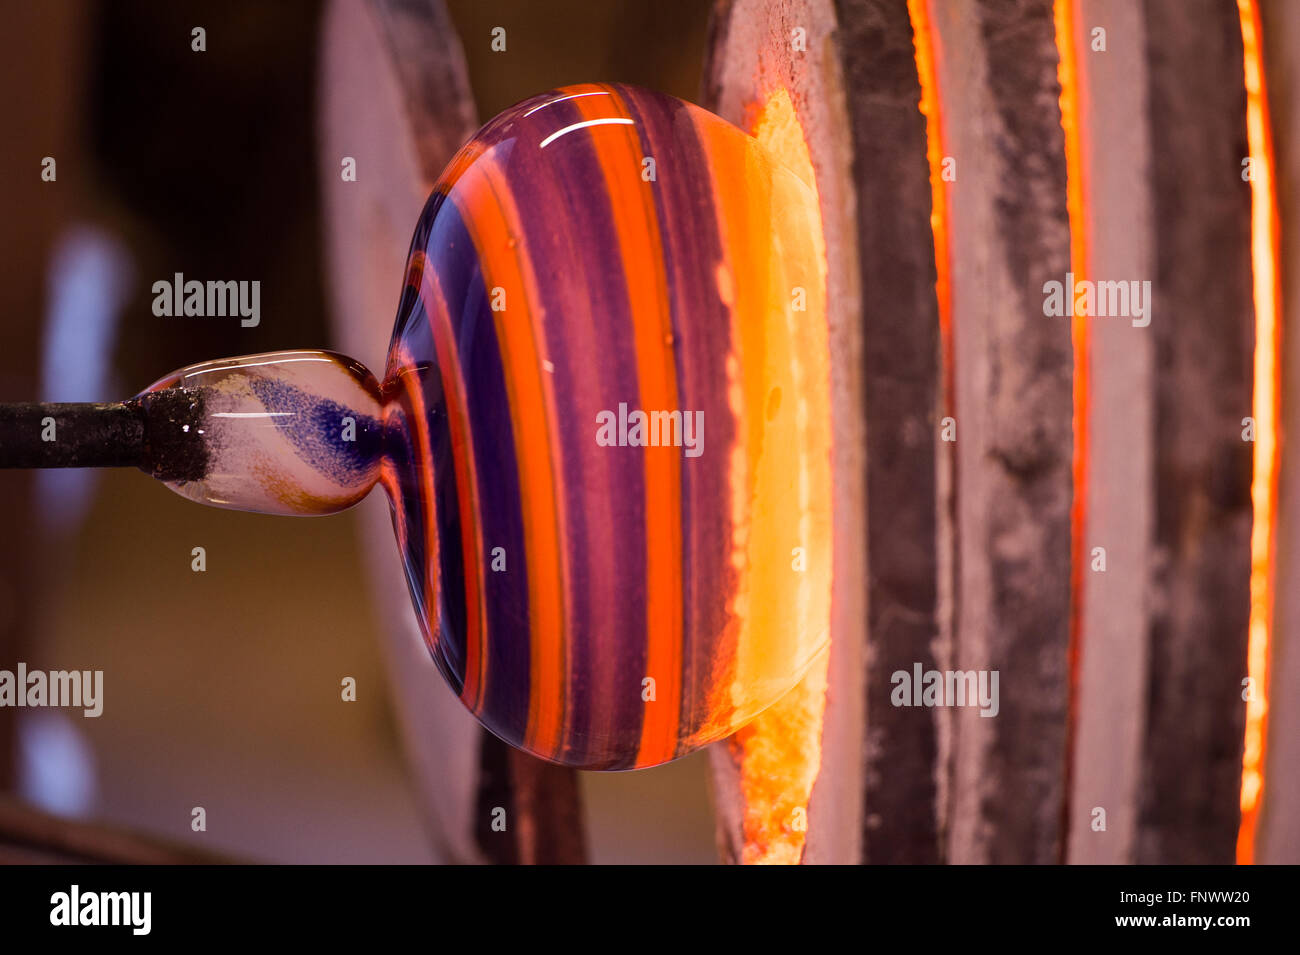 Glass Blower, Glass, Blown Glass Manufacturing Plant - Stock Image